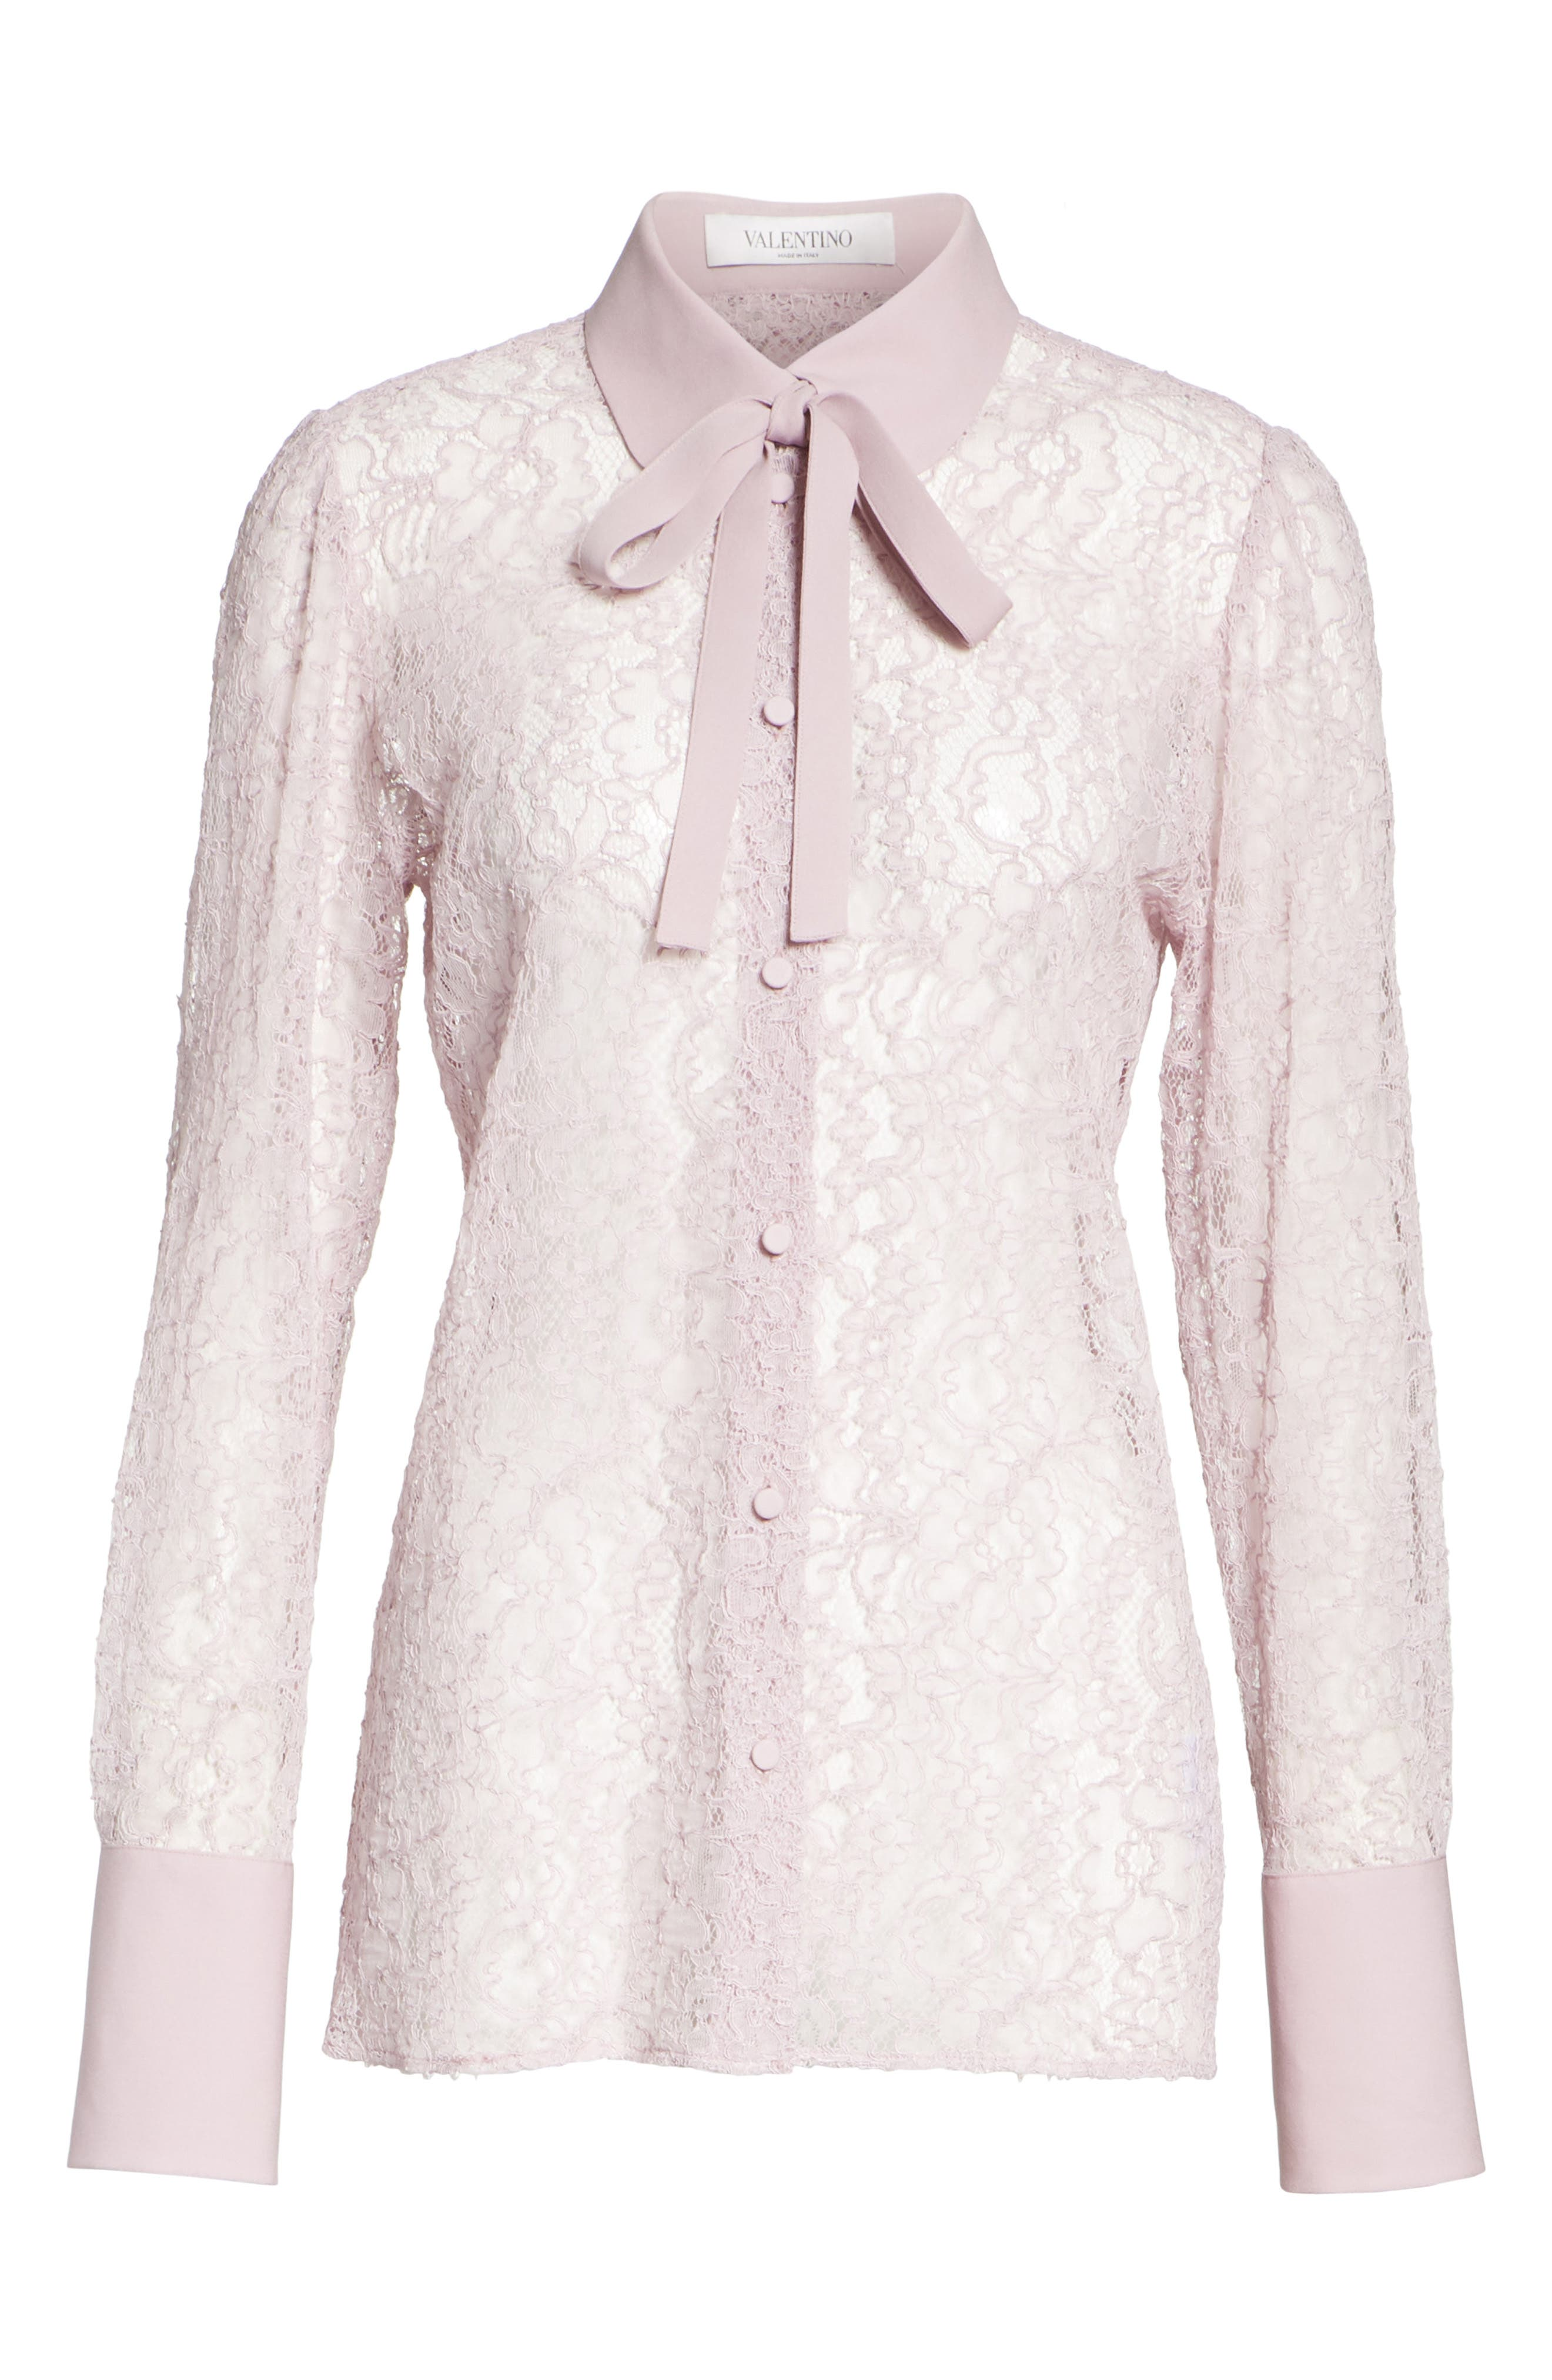 VALENTINO,                             Tie Neck Chantilly Lace Shirt,                             Alternate thumbnail 6, color,                             650